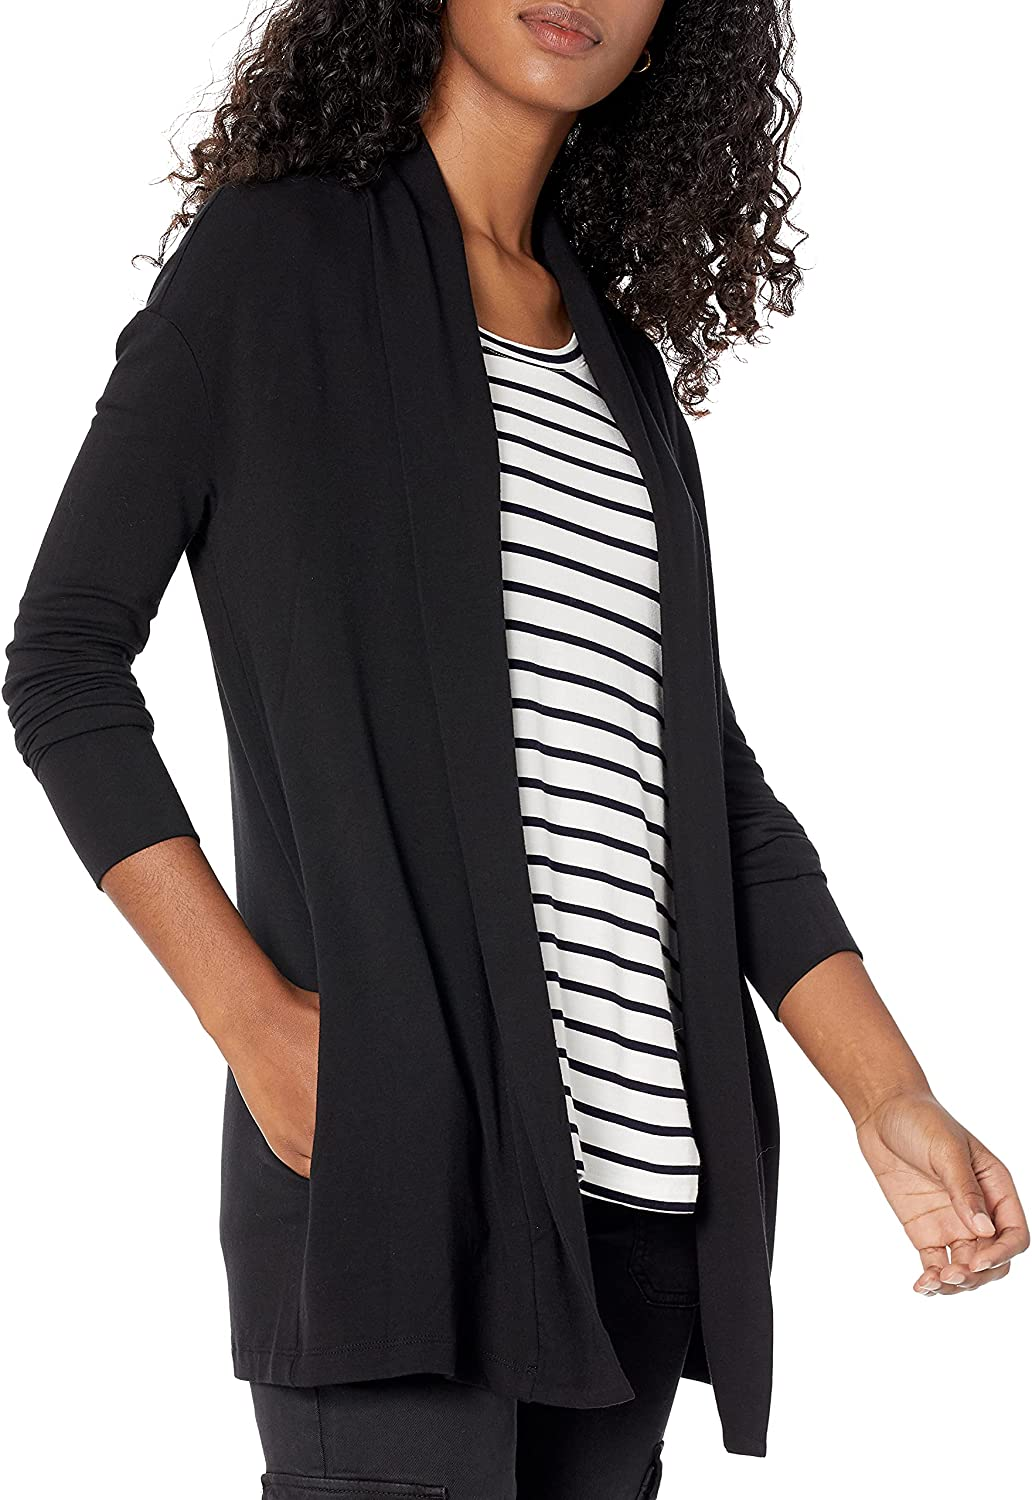 Brand - Daily Ritual Women's Supersoft Terry Open Sweatshirt : Clothing, Shoes & Jewelry